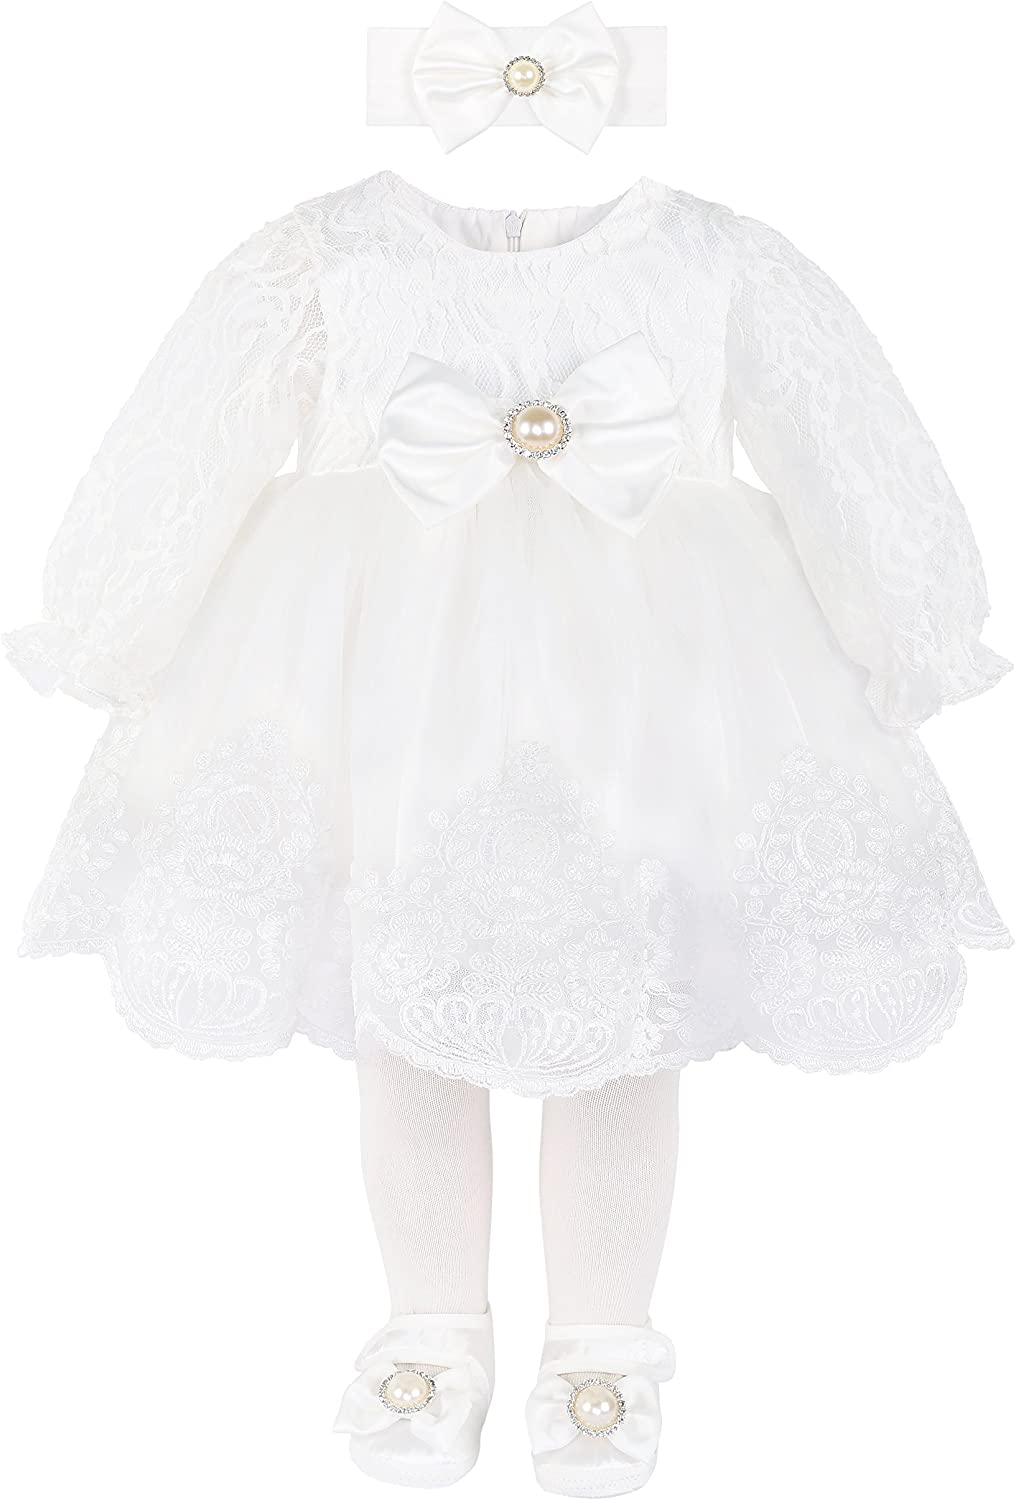 Taffy Baby Girl Newborn Christening Baptism Lace White Dress Gown 6 Piece Deluxe Set